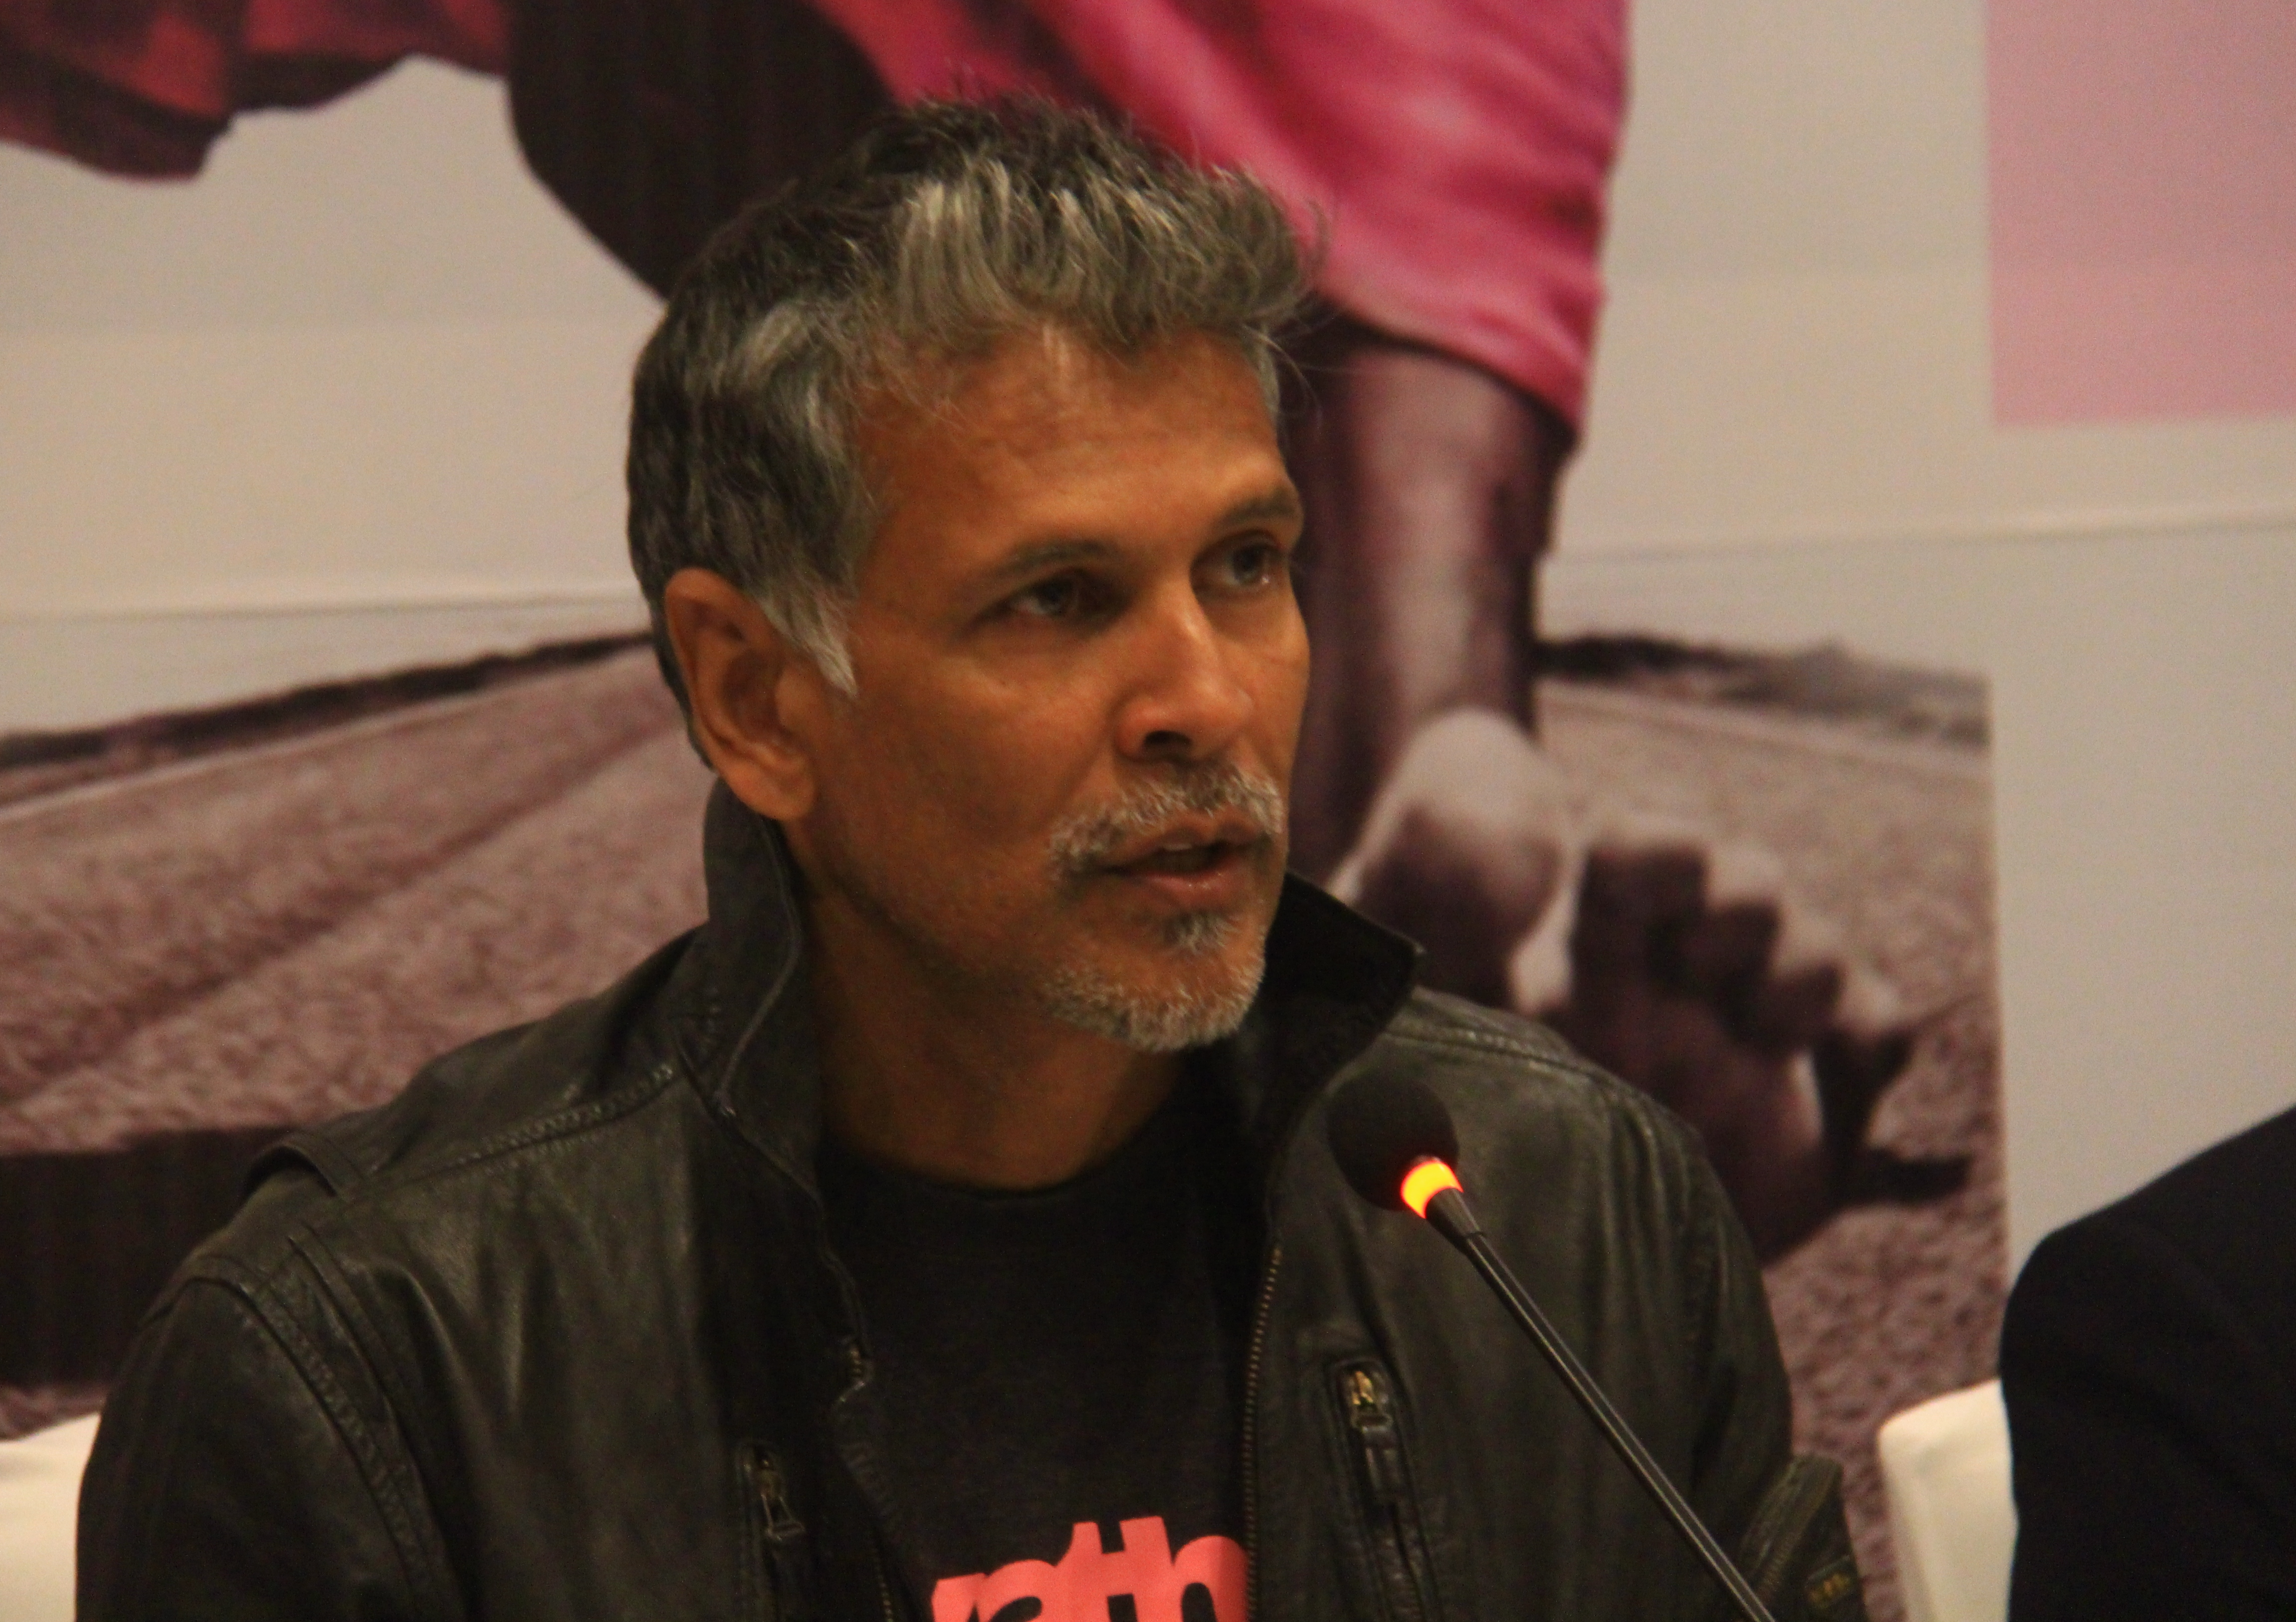 Founder of United Sisters Foundation and Indian actor Milind Soman (second from left) gestures as others look on during a press meet in Kathmandu on Friday.